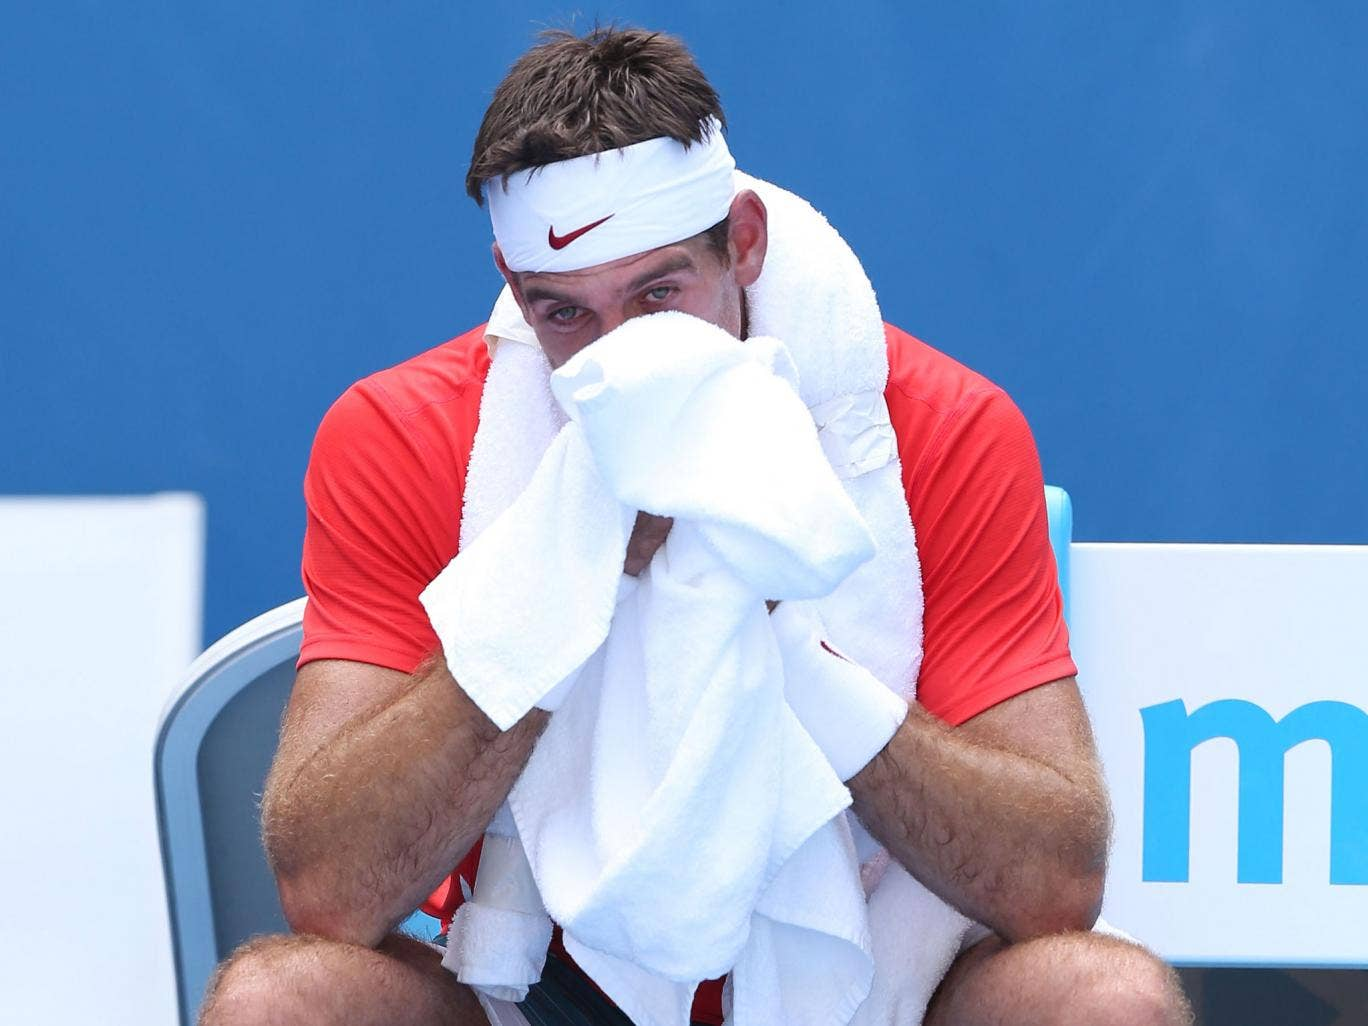 Juan Martin Del Potro was beating in the second round of the Australian Open by Roberto Bautista